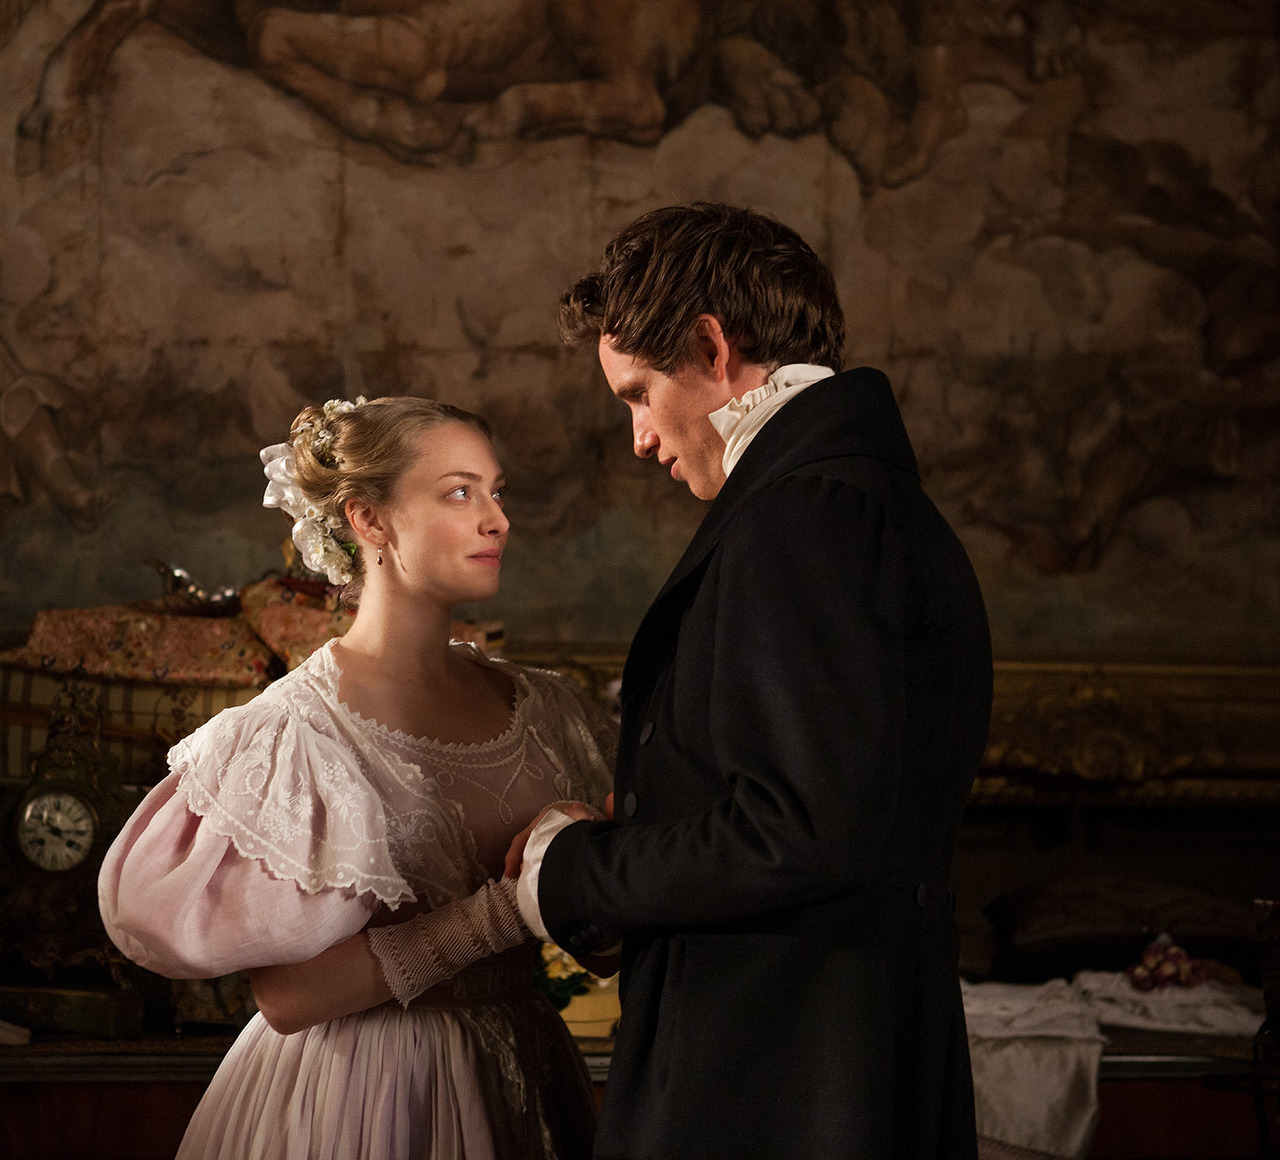 marius and cosette meet the press